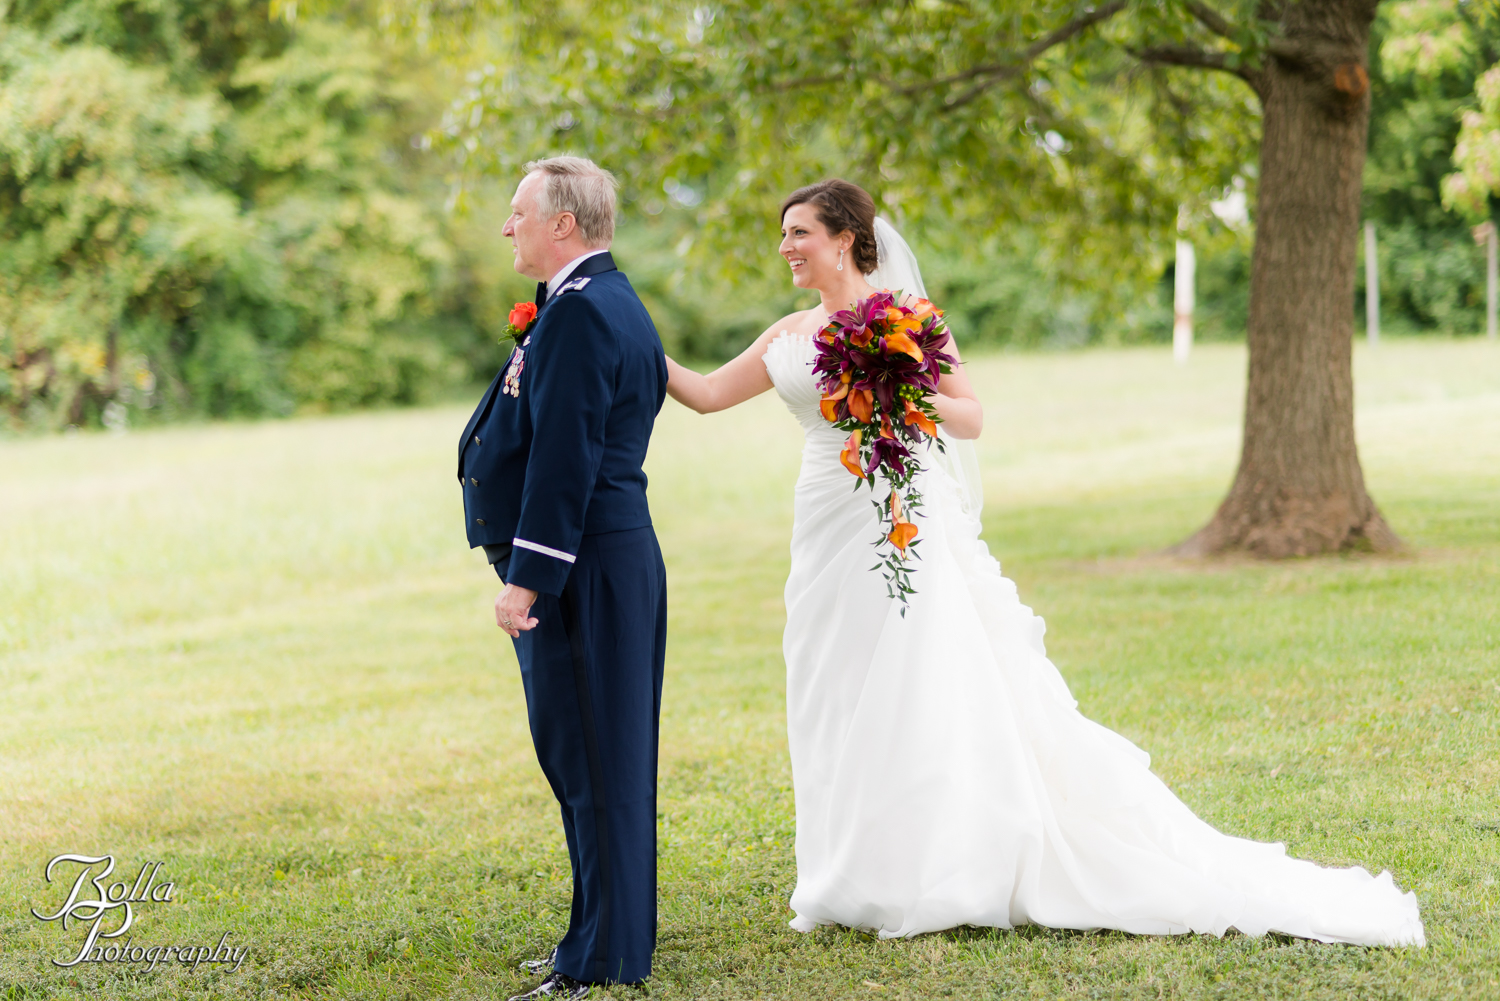 Bolla_Photography_St_Louis_wedding_photographer-0065.jpg